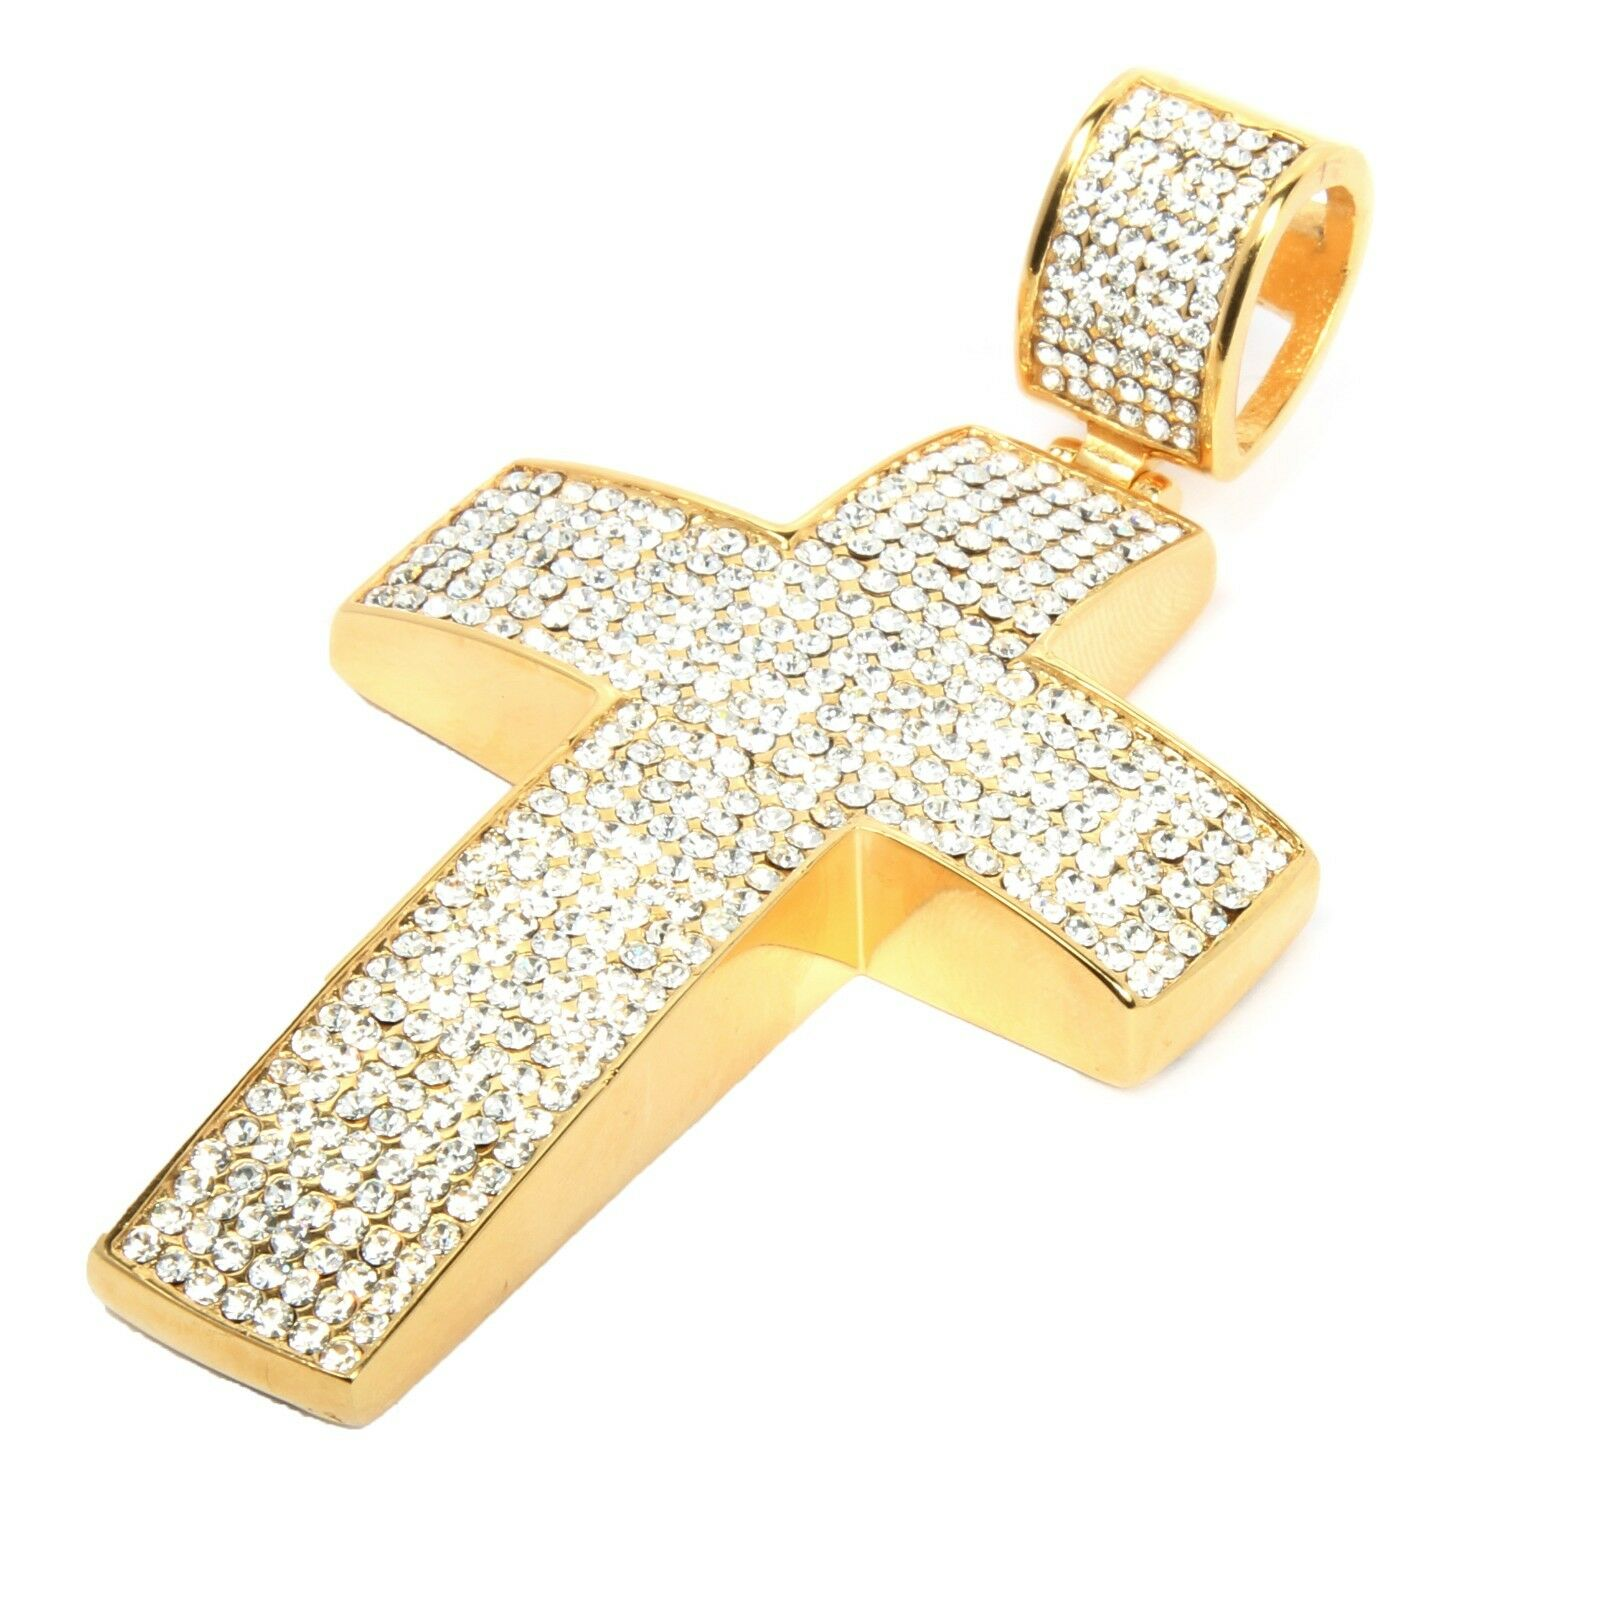 Mens 14k gold Plated Iced Out Hip Hop Large Cross Stainless Steel Pendant K9